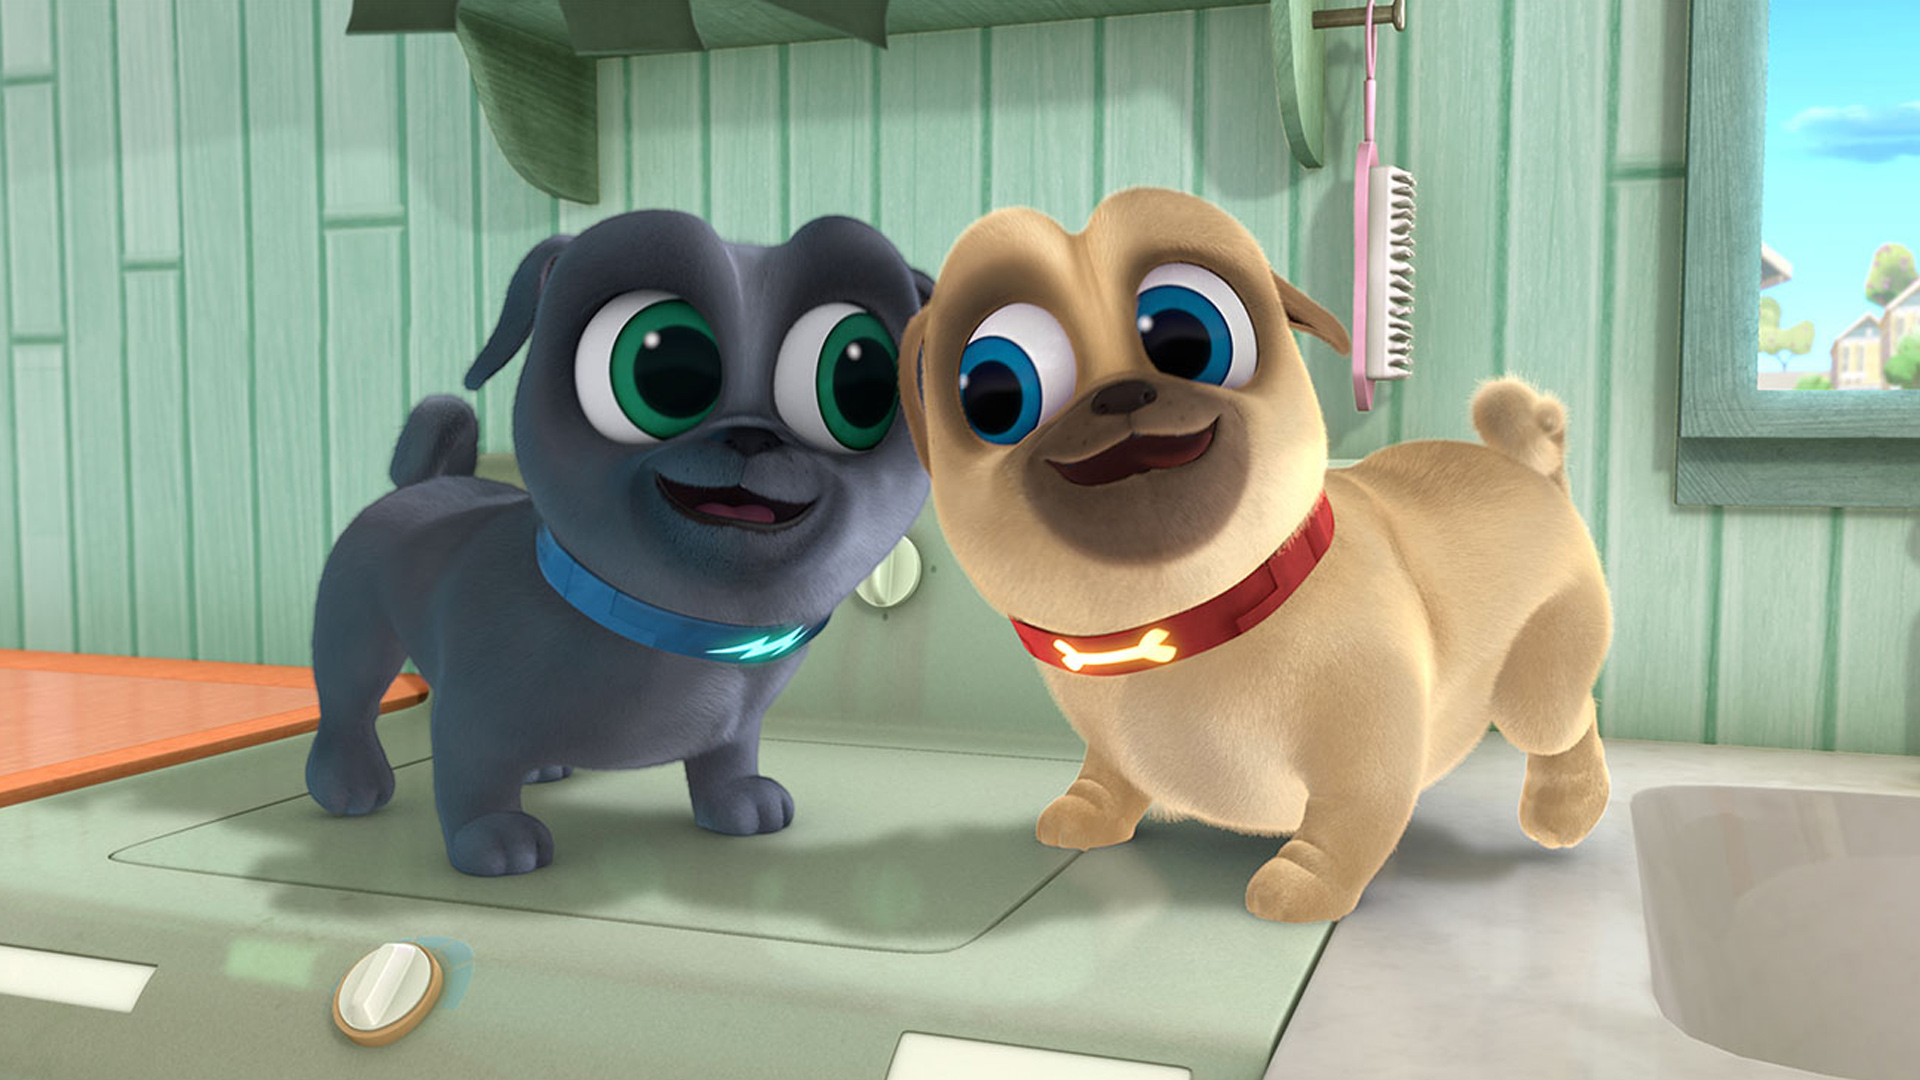 Puppy Dog Pals: Going on a Mission